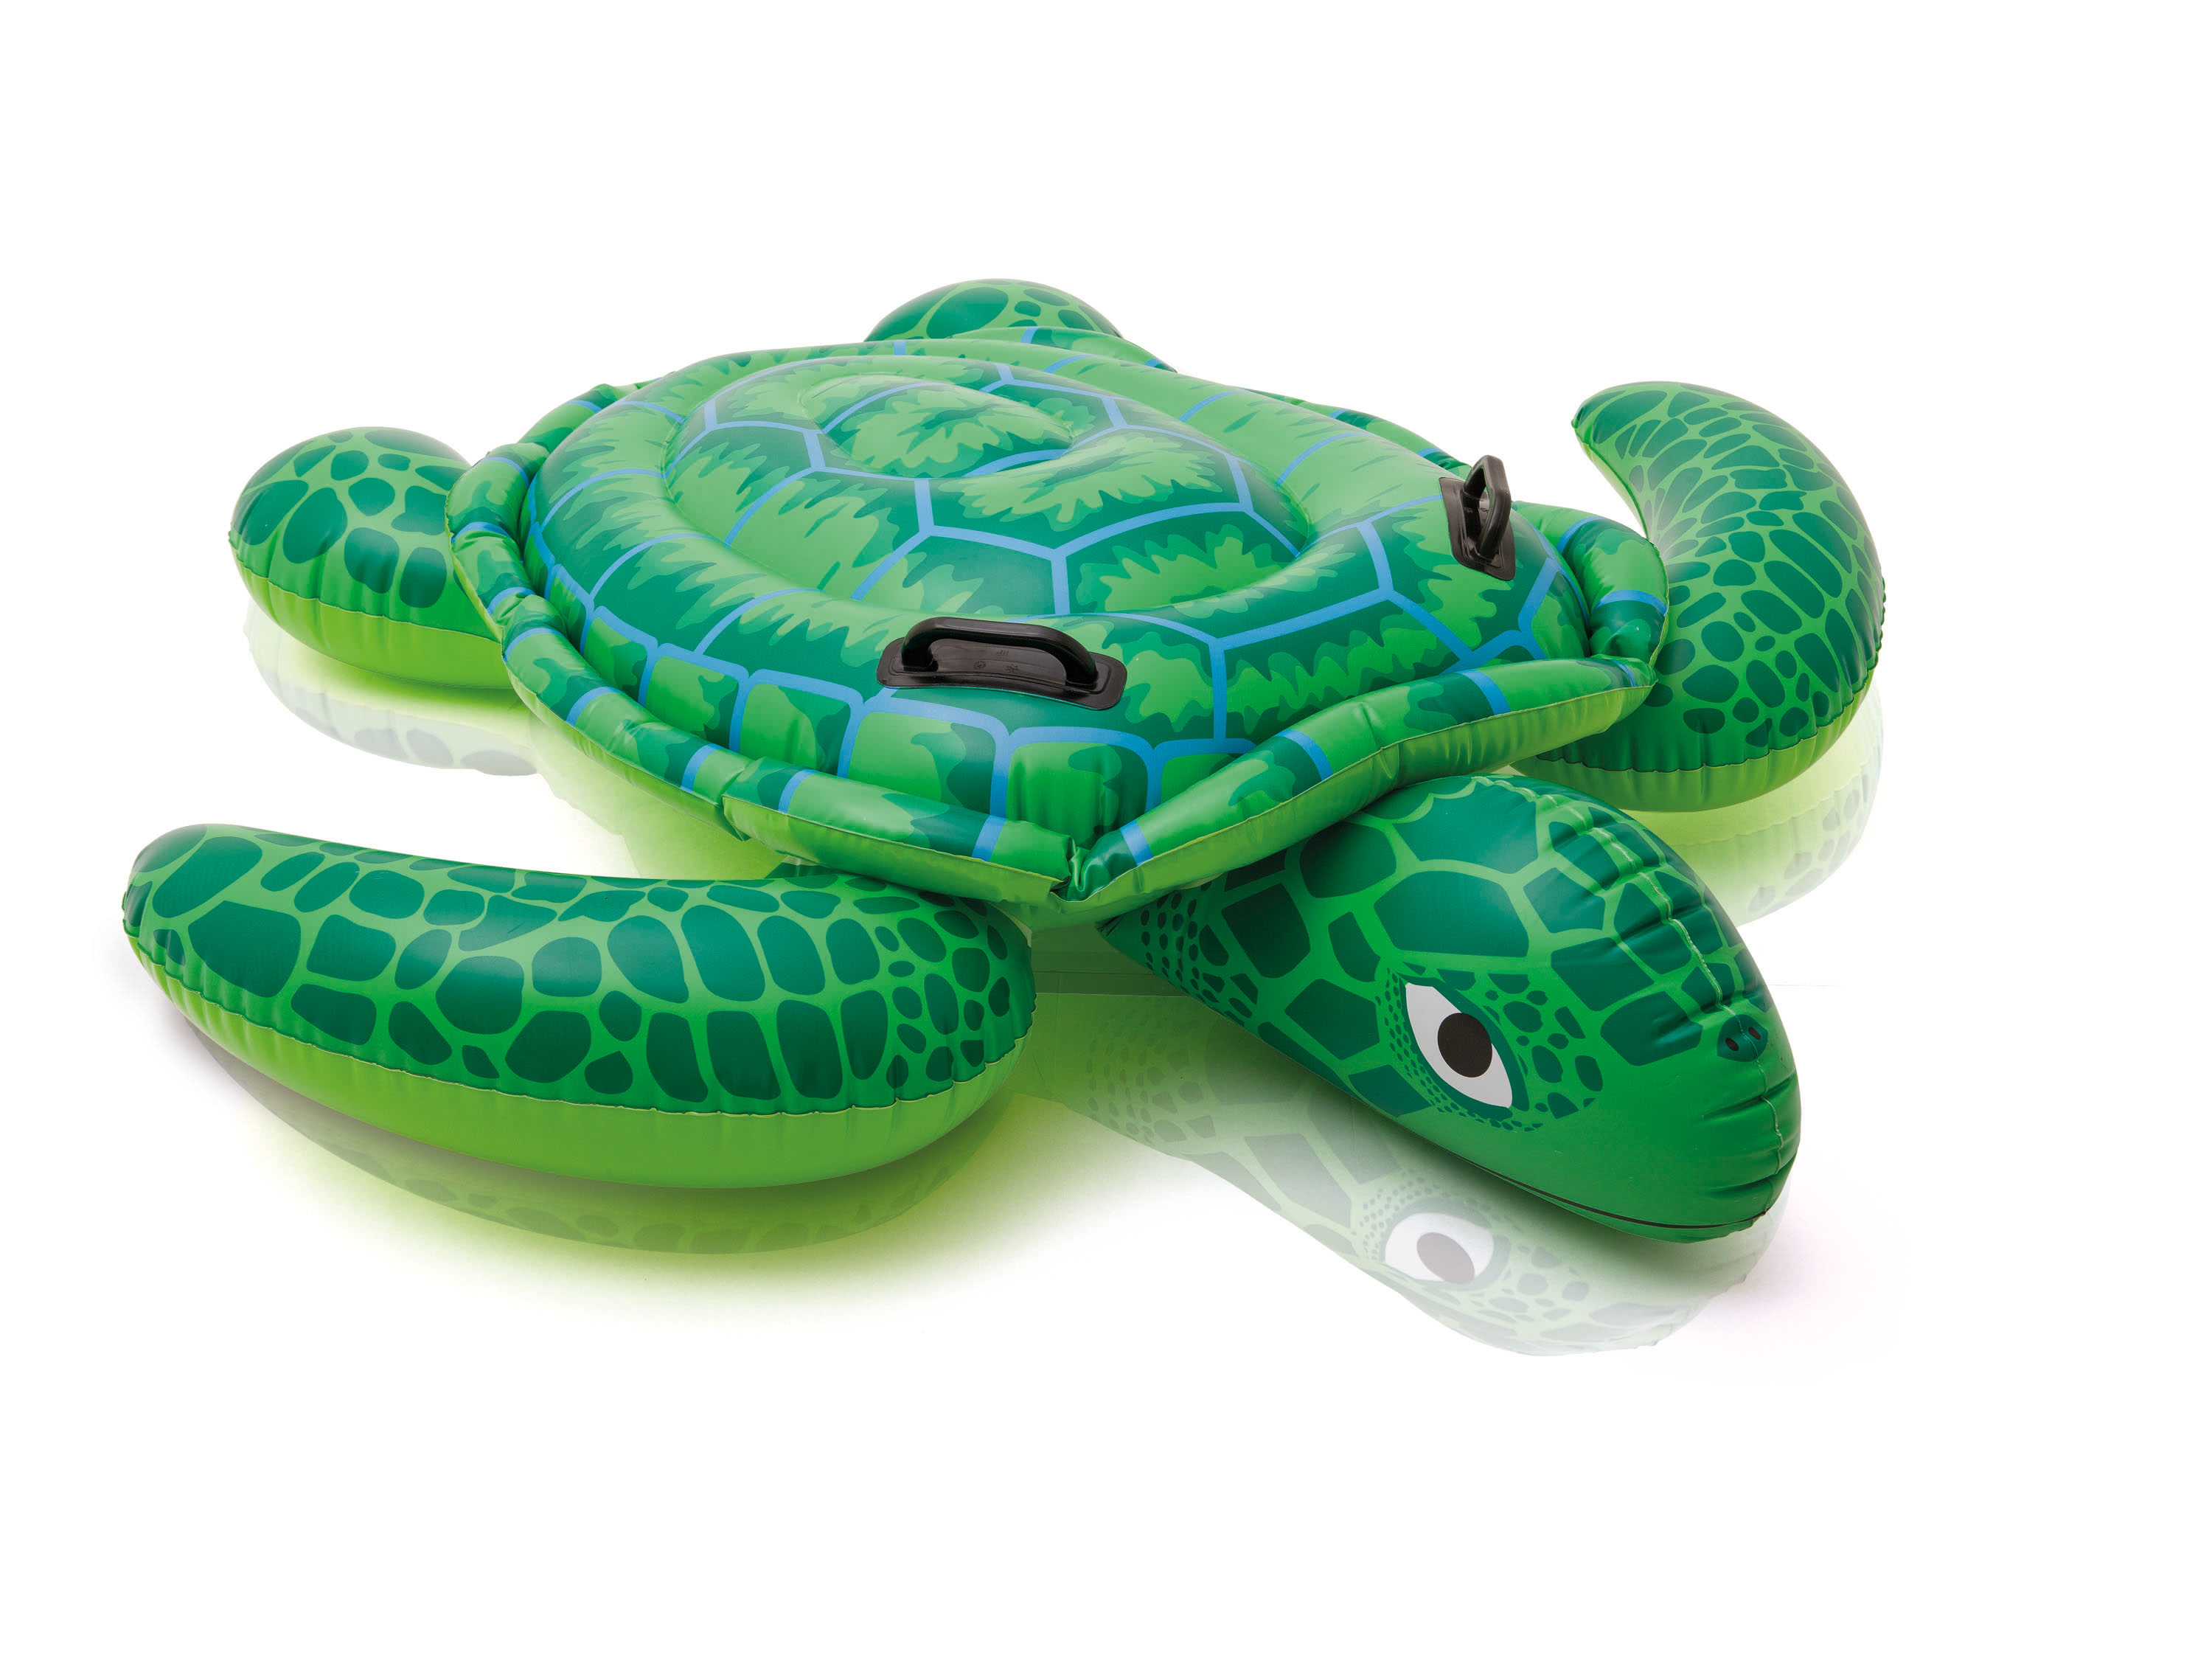 LIL SEA TURTLE RIDE ON  AGES 3+